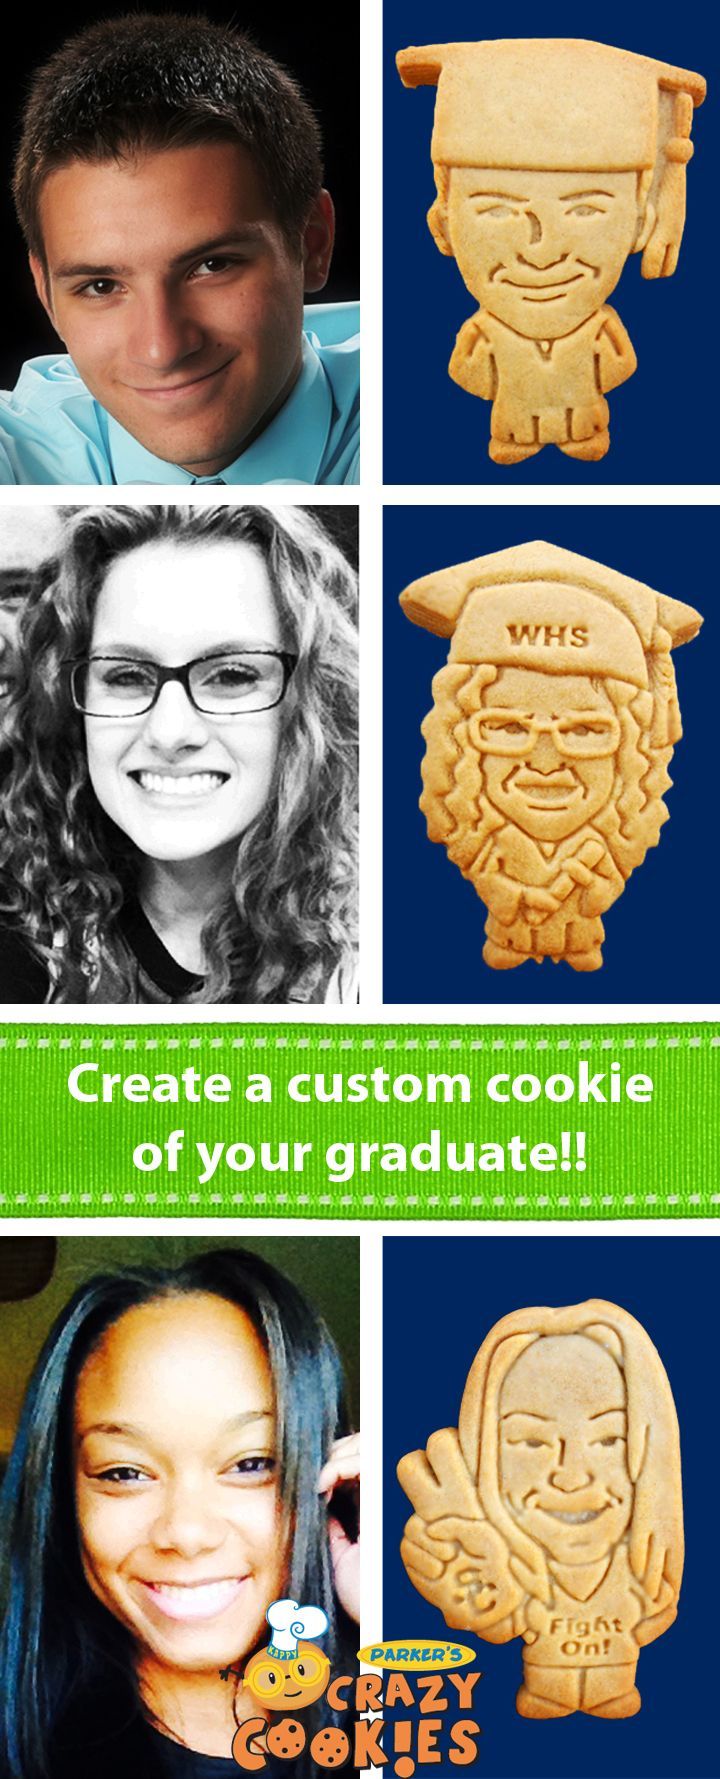 Throw a graduation party your guests will never forget!! Custom cookies from Parker's Crazy Cookies LLC. The leader in unique edible favors. Discover the magic at www.parkerscrazycookies.com. As seen on the Food Network.